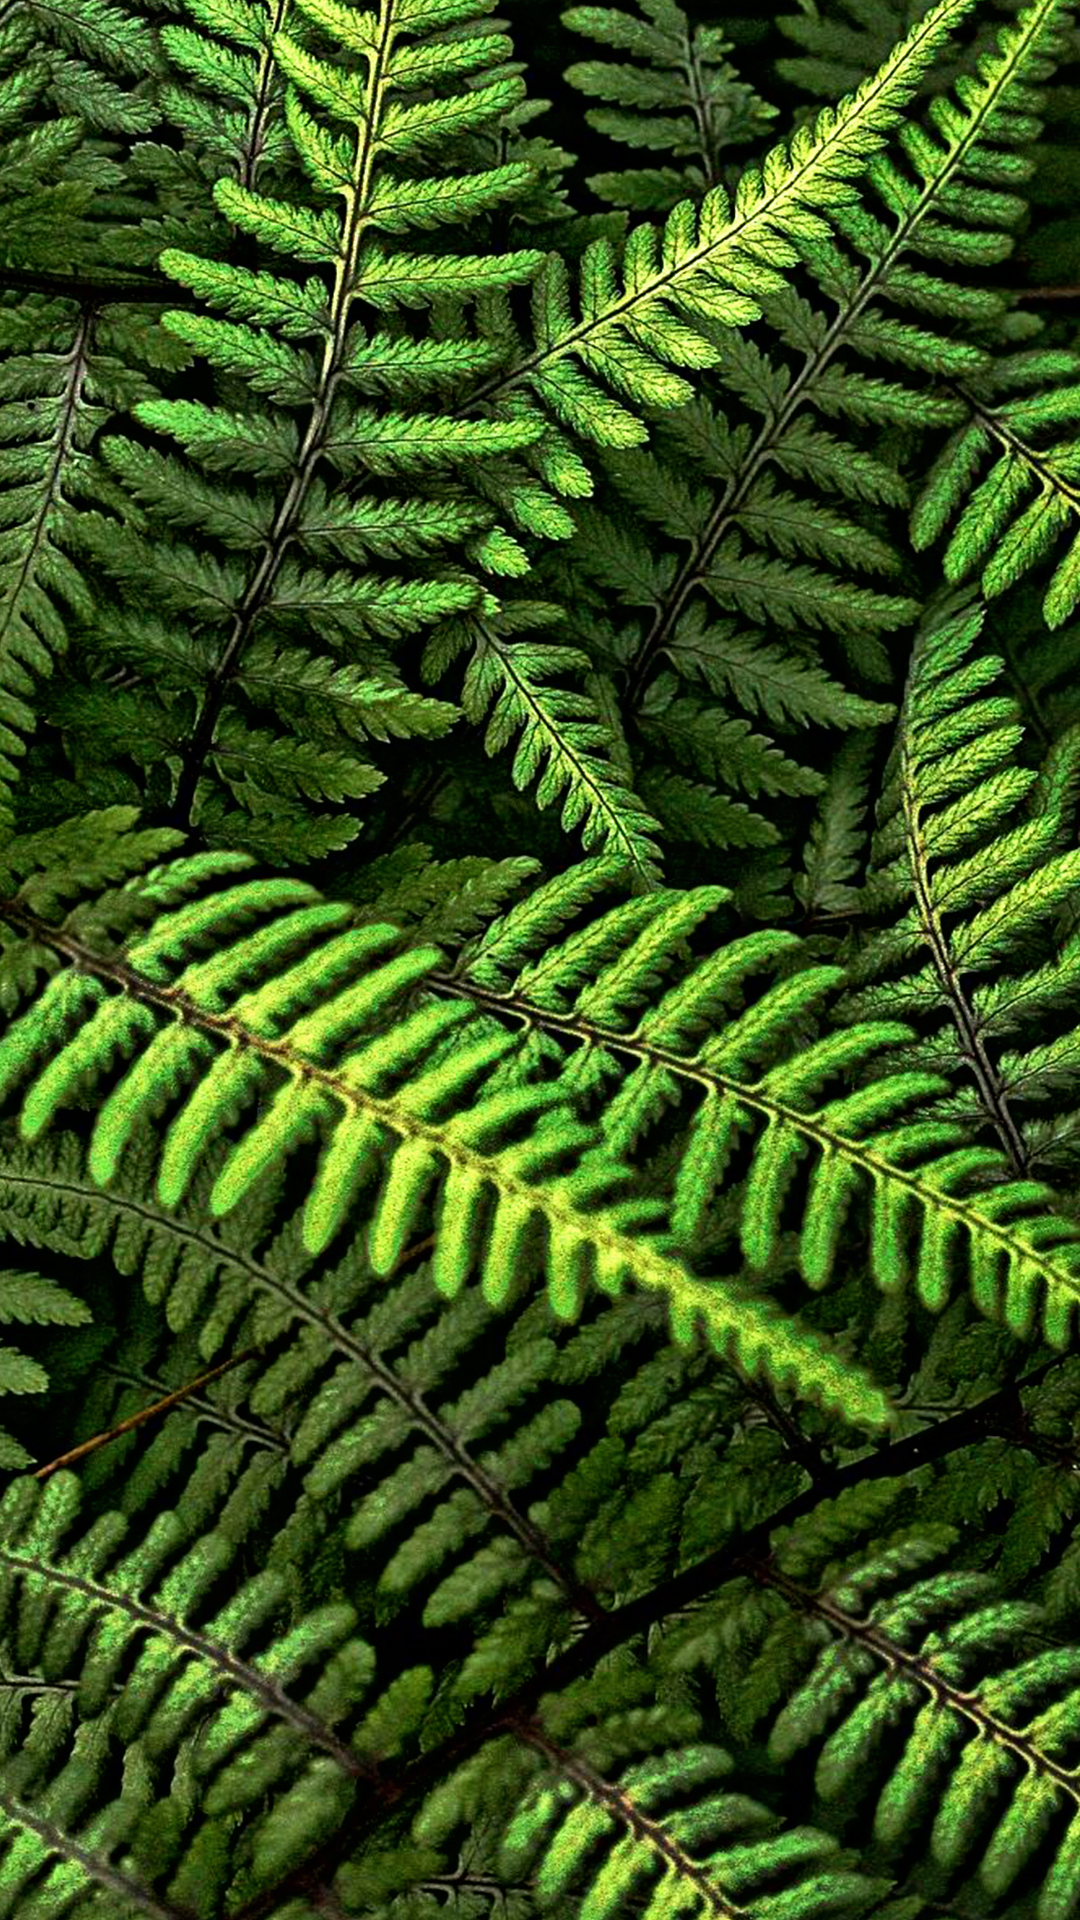 Green Fern Hd Wallpaper For Your Iphone 6